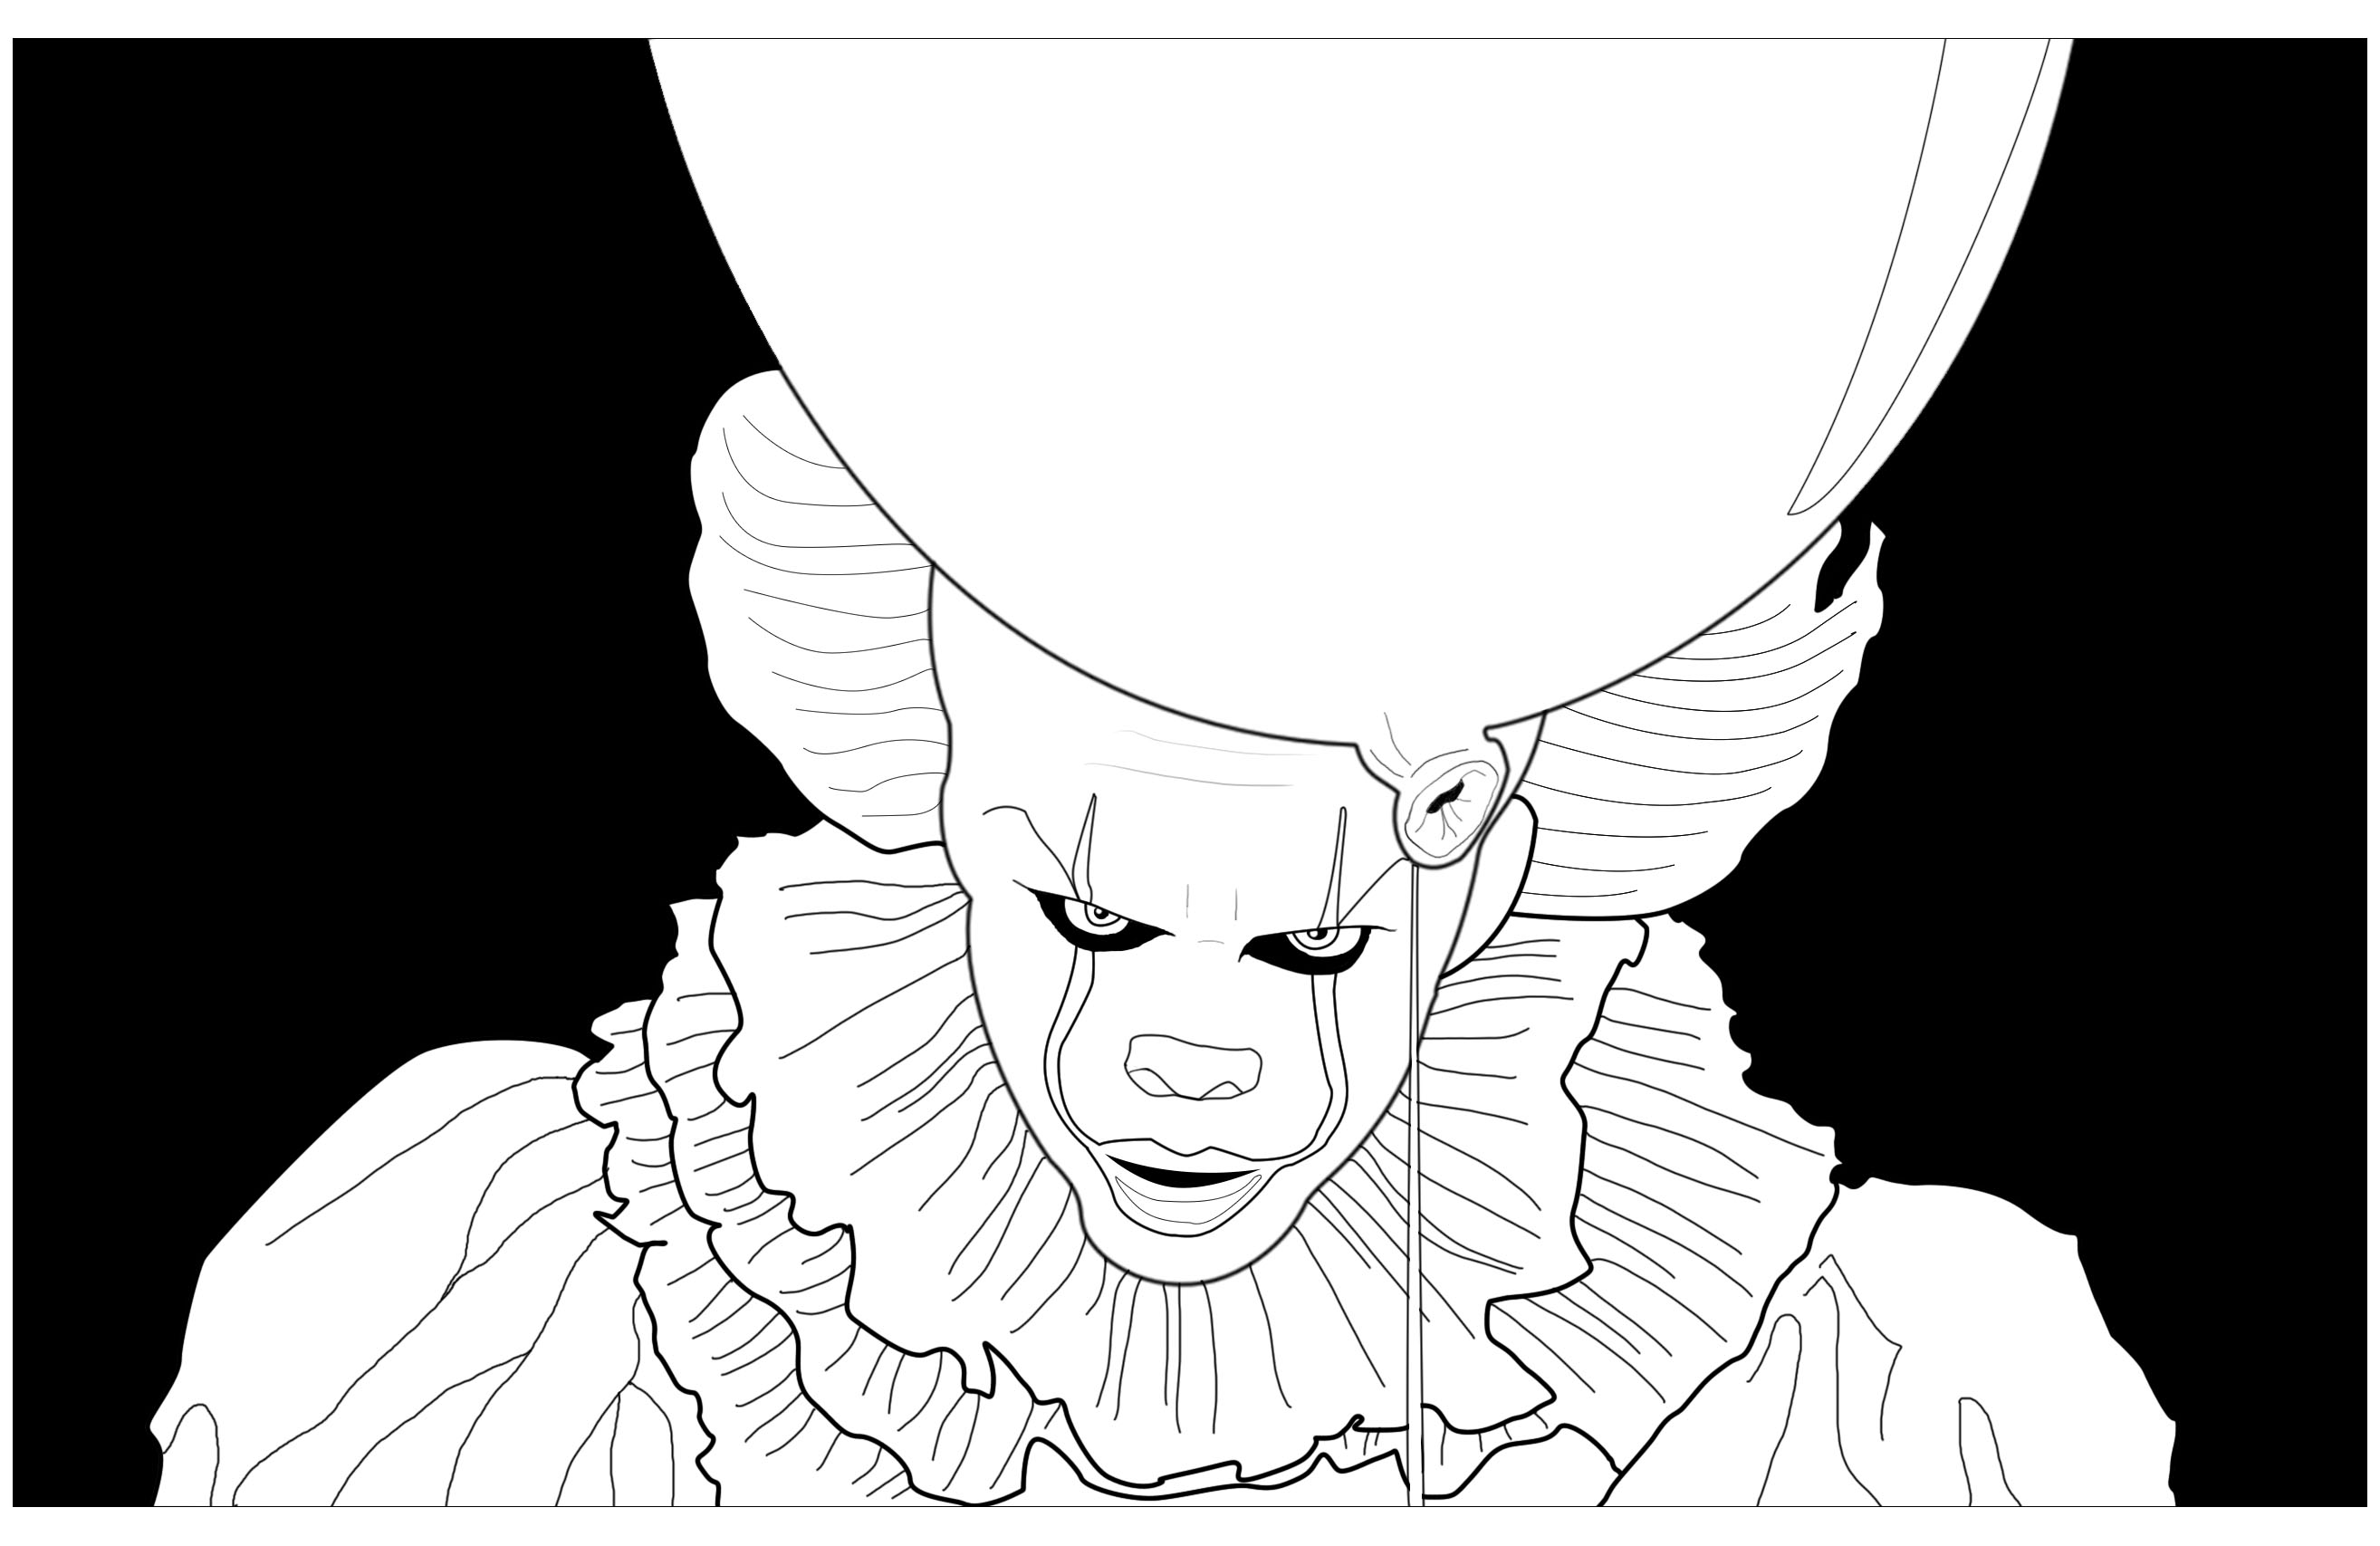 Ca clown pennywise black background | Halloween - Coloring pages ...